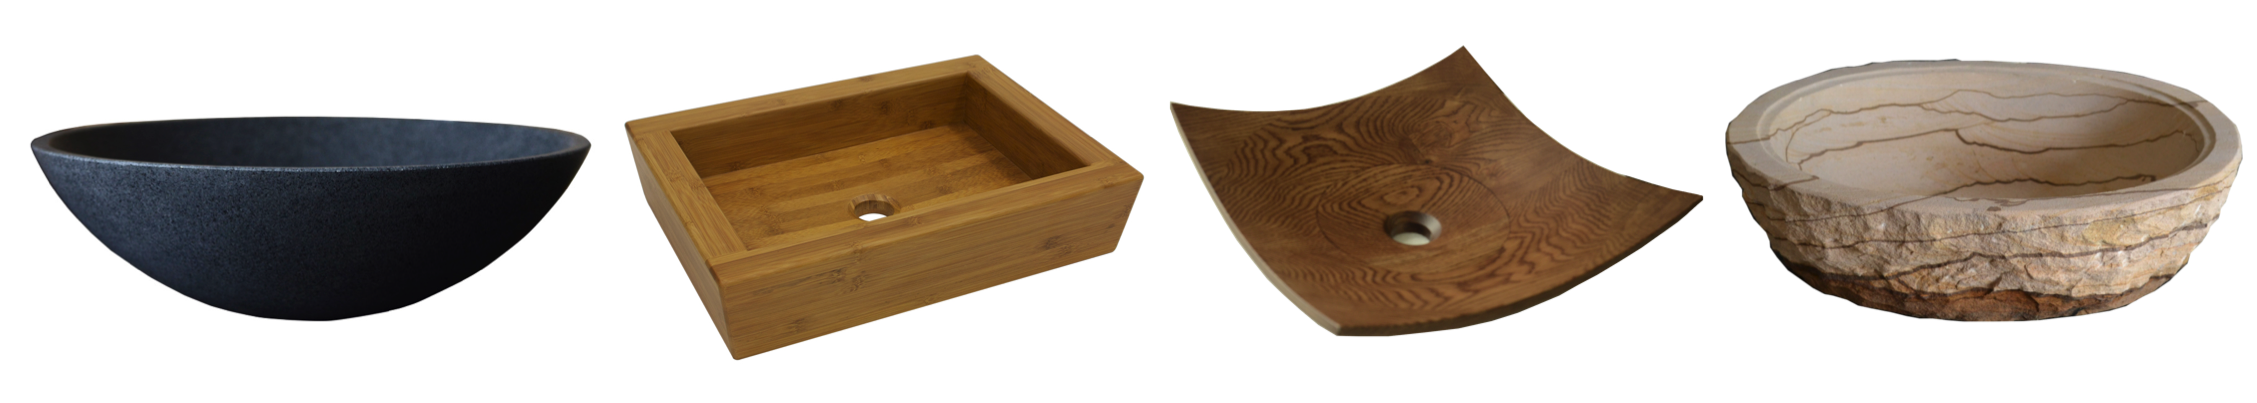 moku stone basins and wooden basins